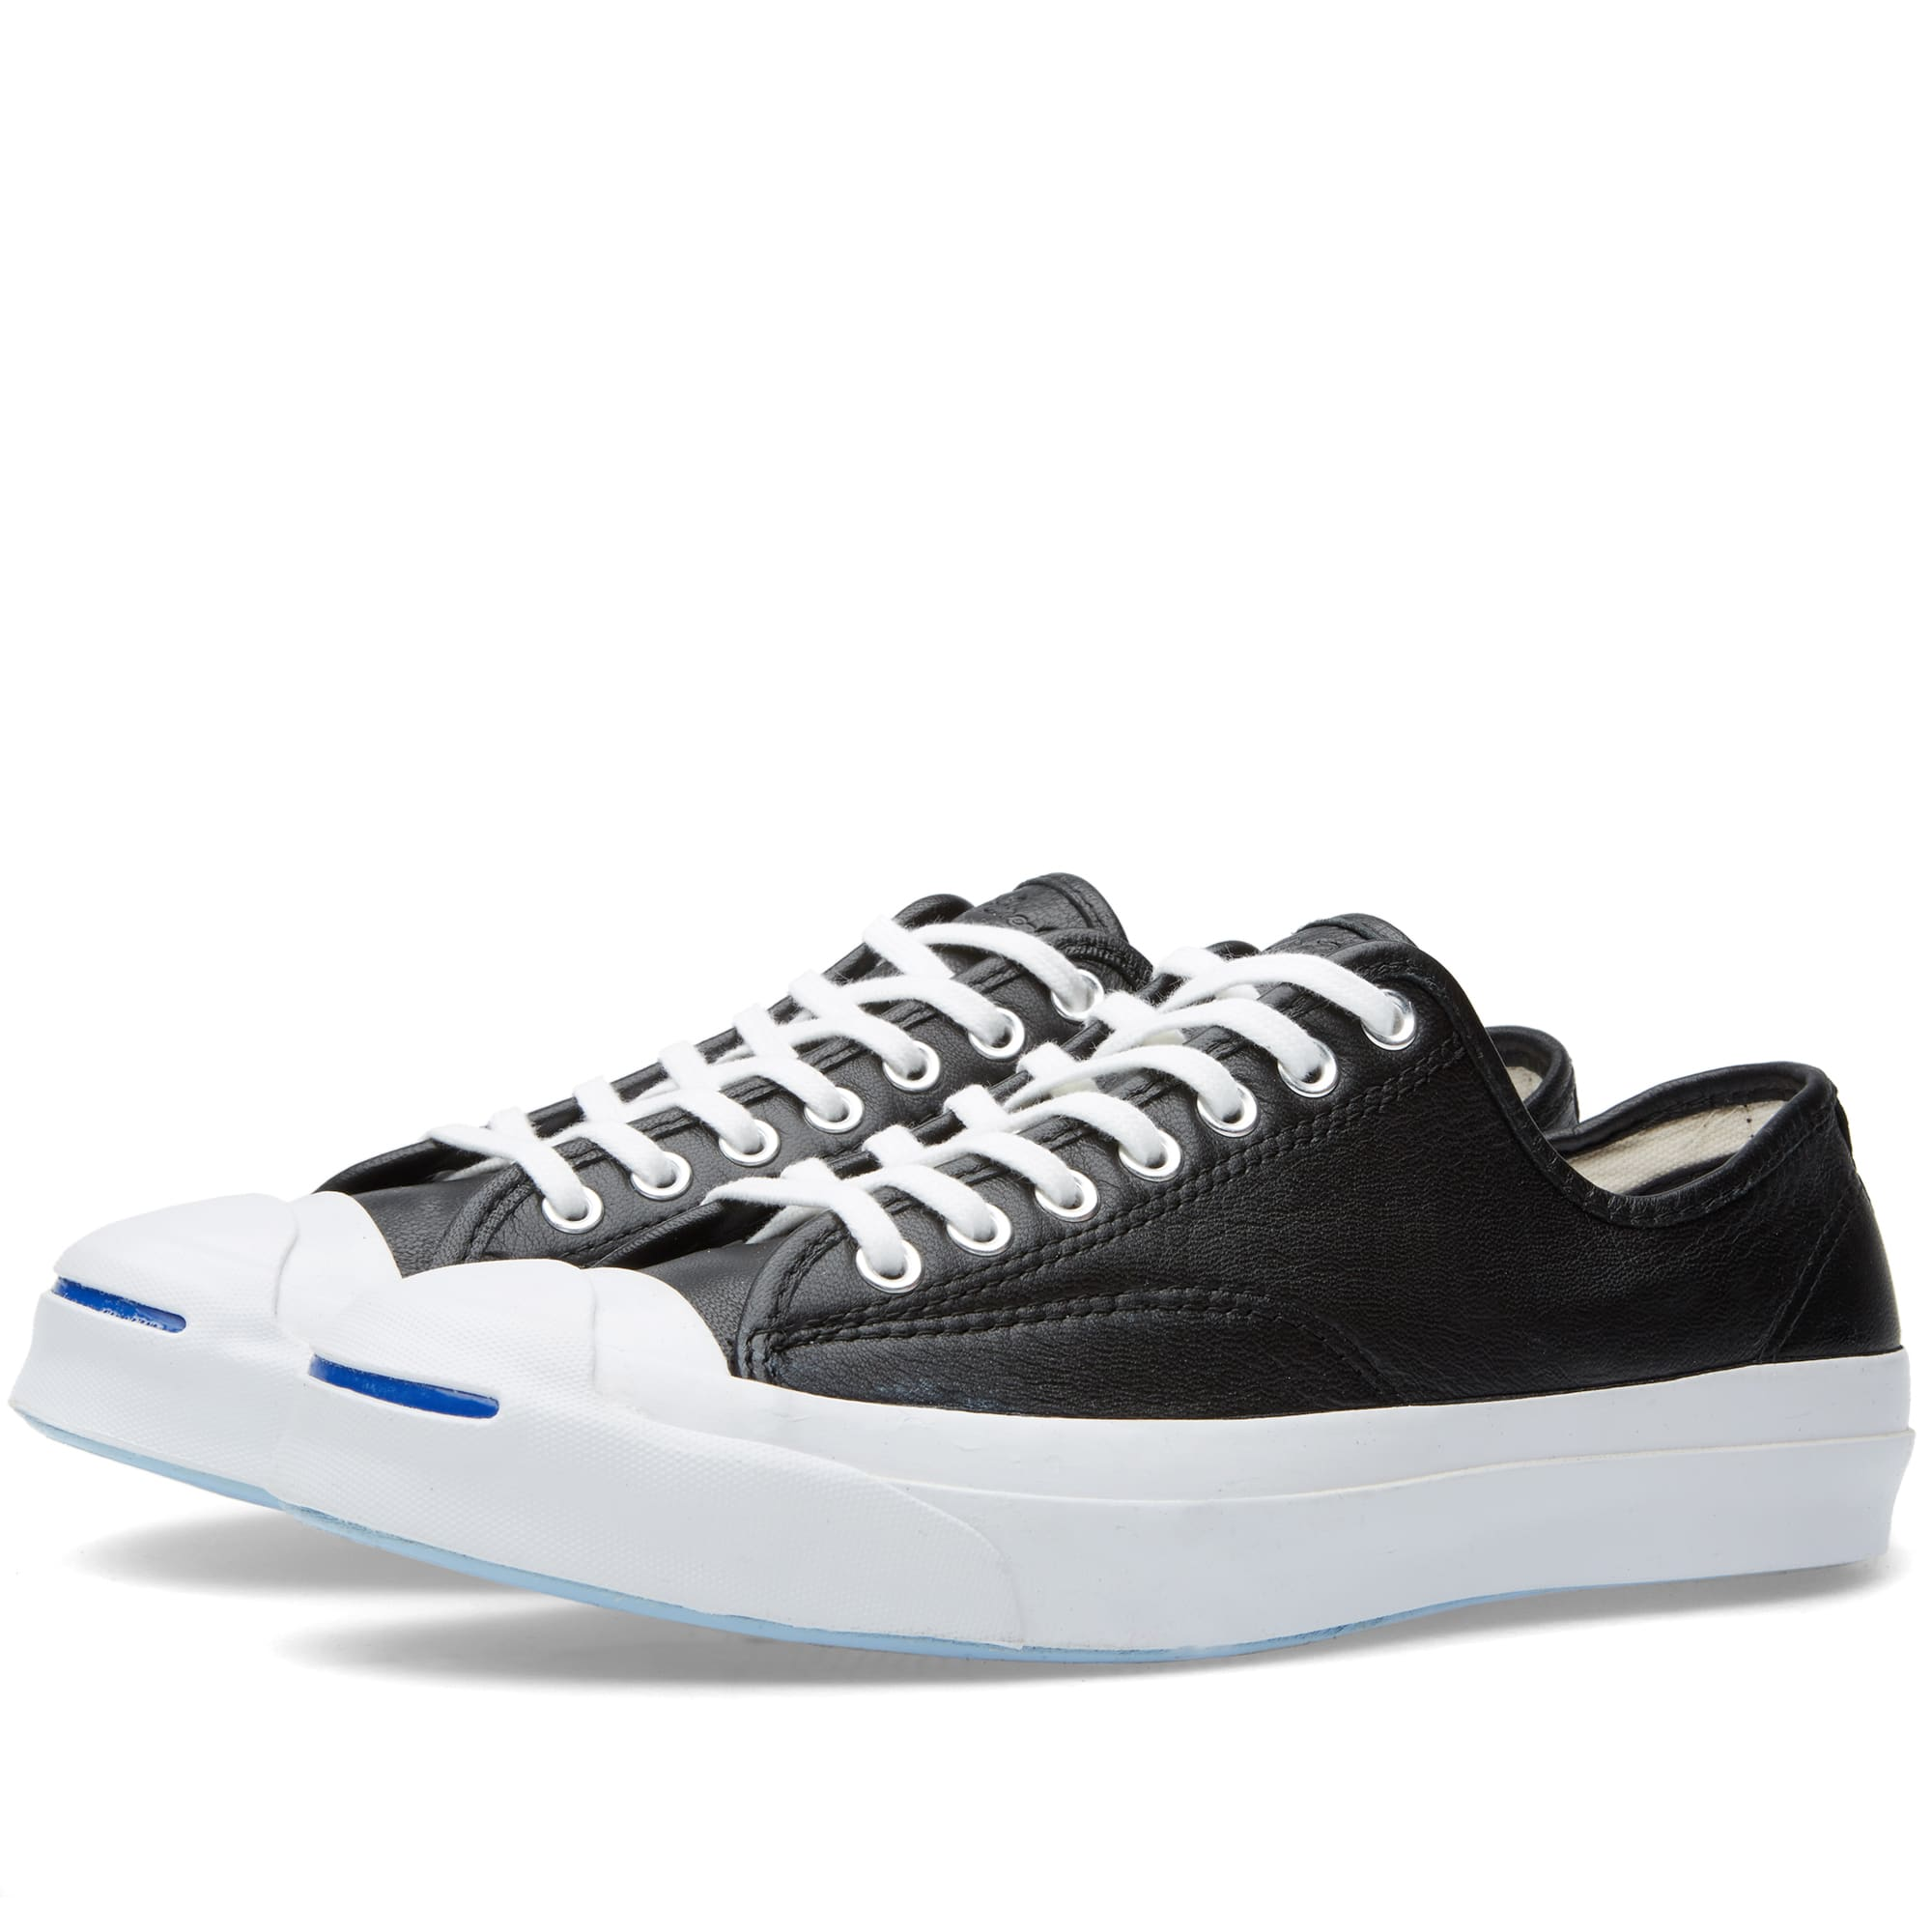 cf7dd91ef364c0 Converse Jack Purcell Signature Leather Black   White